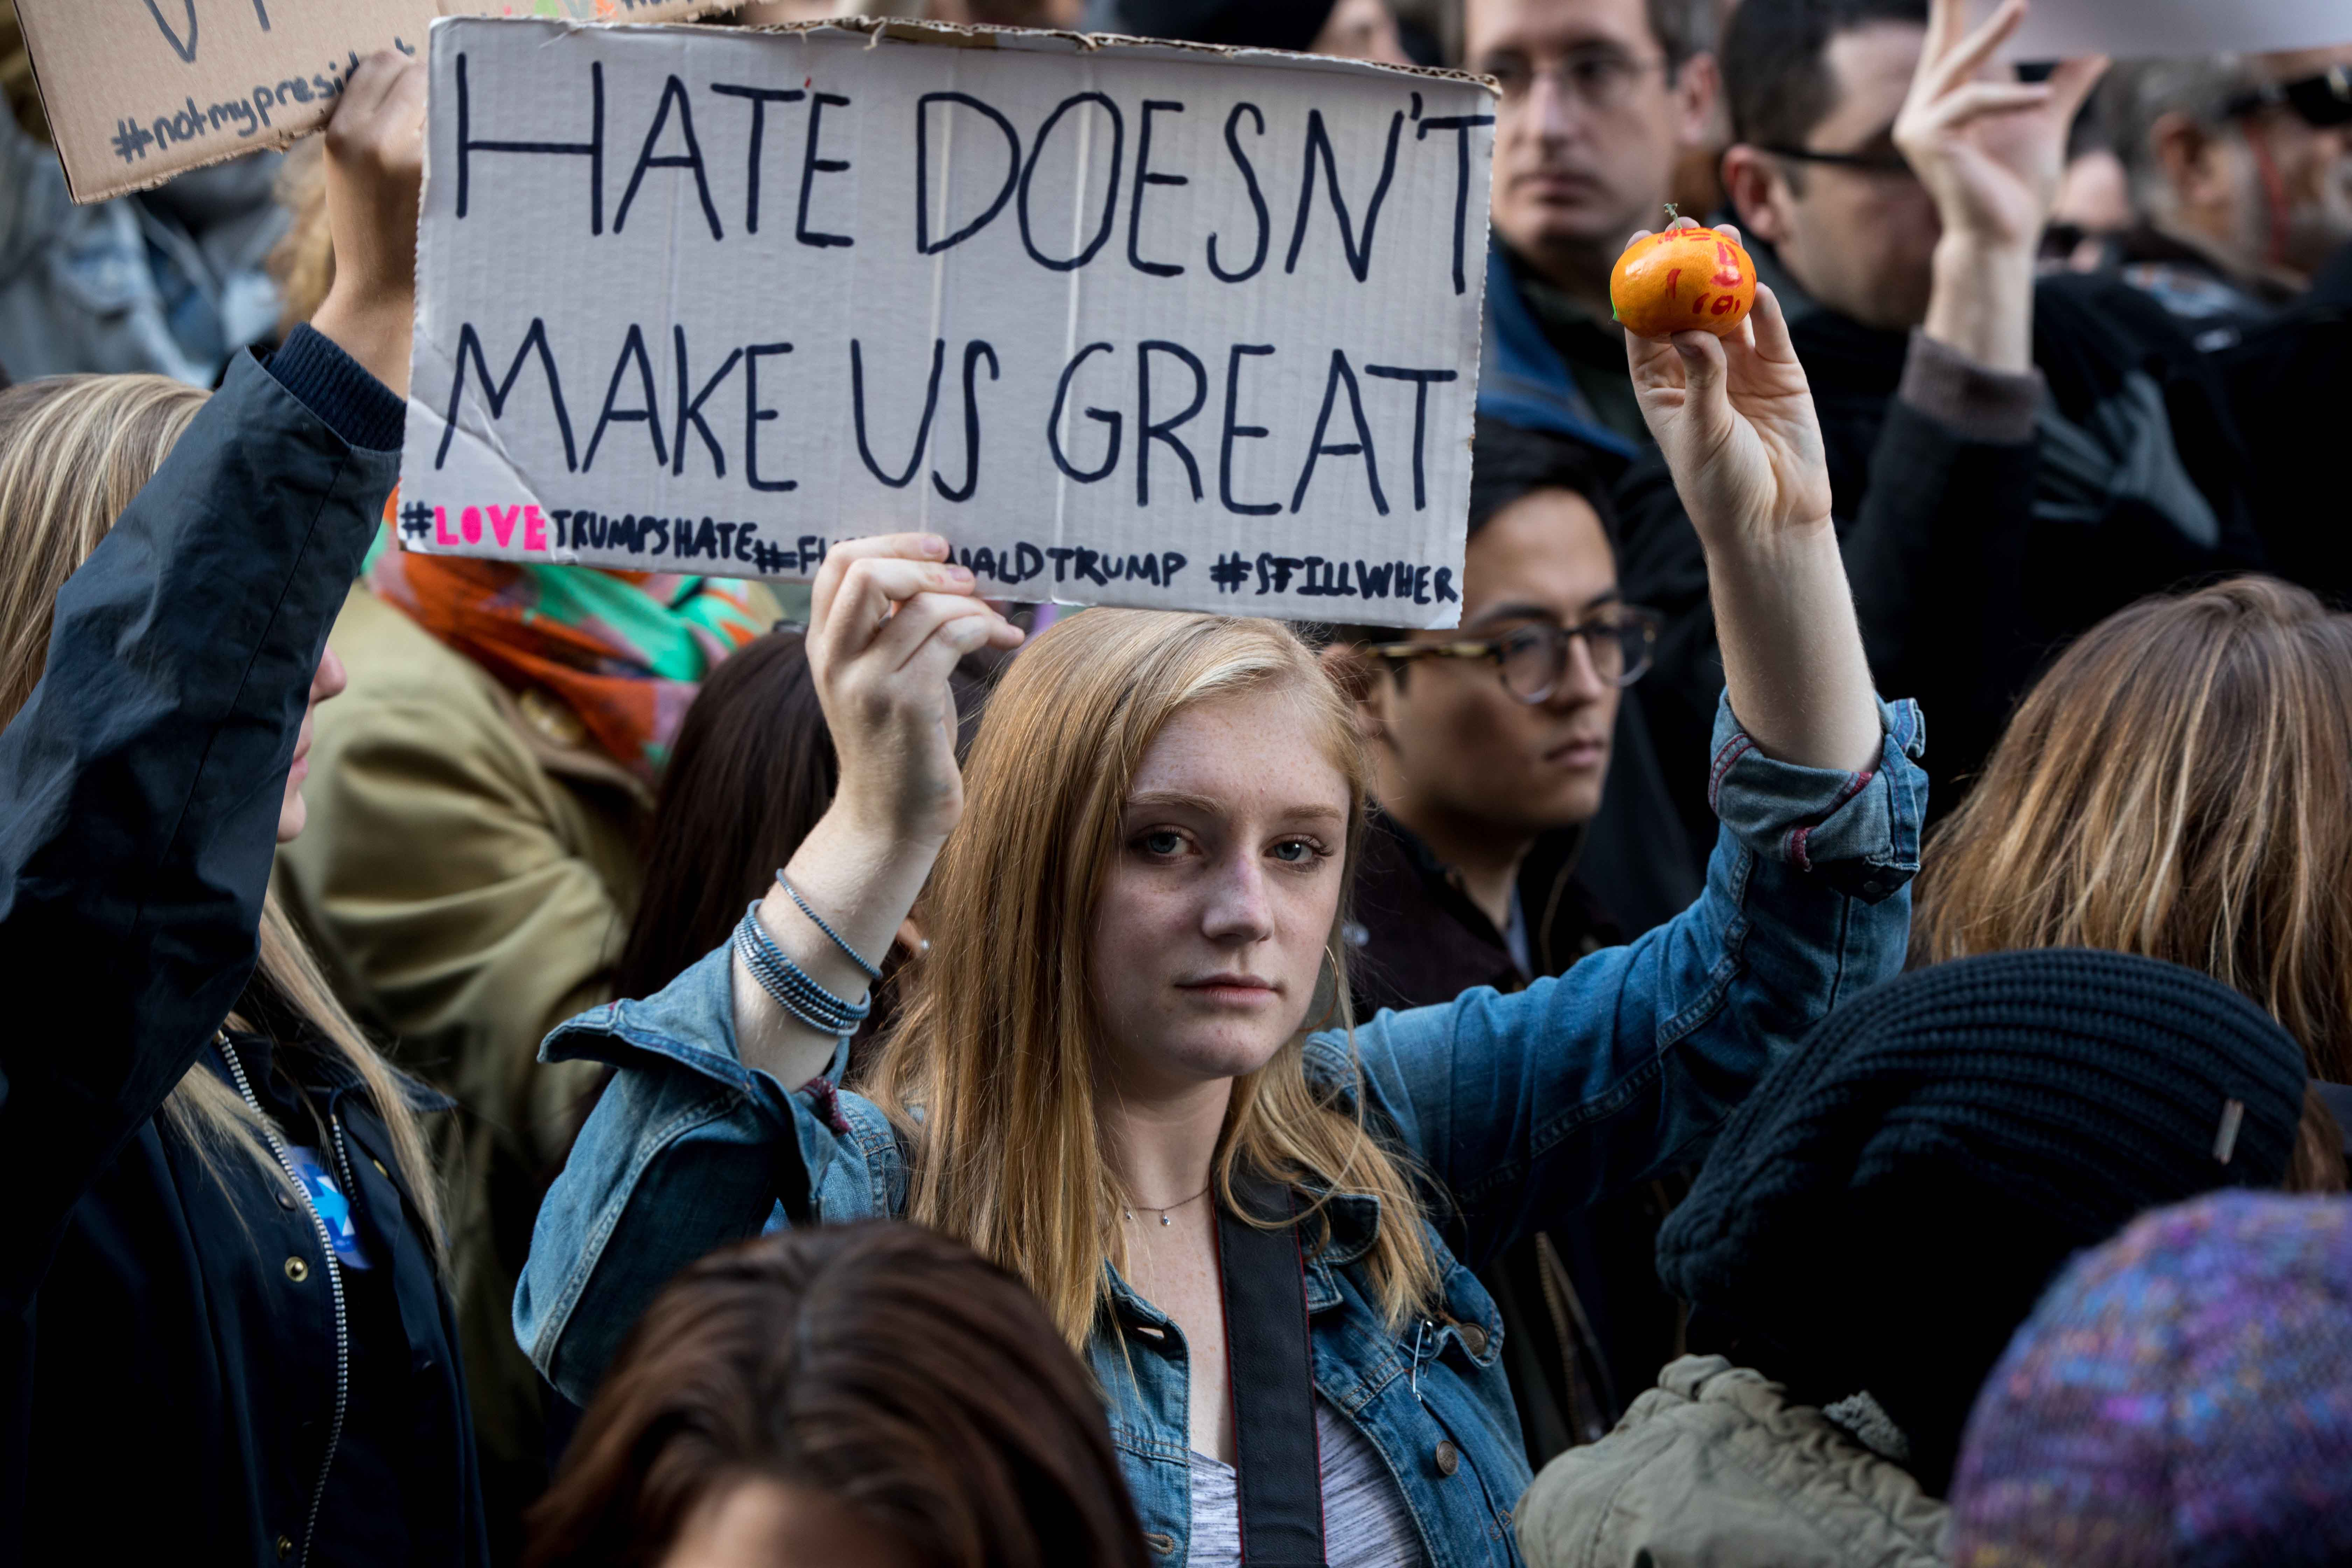 Protestors gather at a massive anti-Donald Trump rally at Trump Tower in Manhattan on Saturday, Nov. 12, 2016. (Jeffrey Basinger/Newsday/TNS)